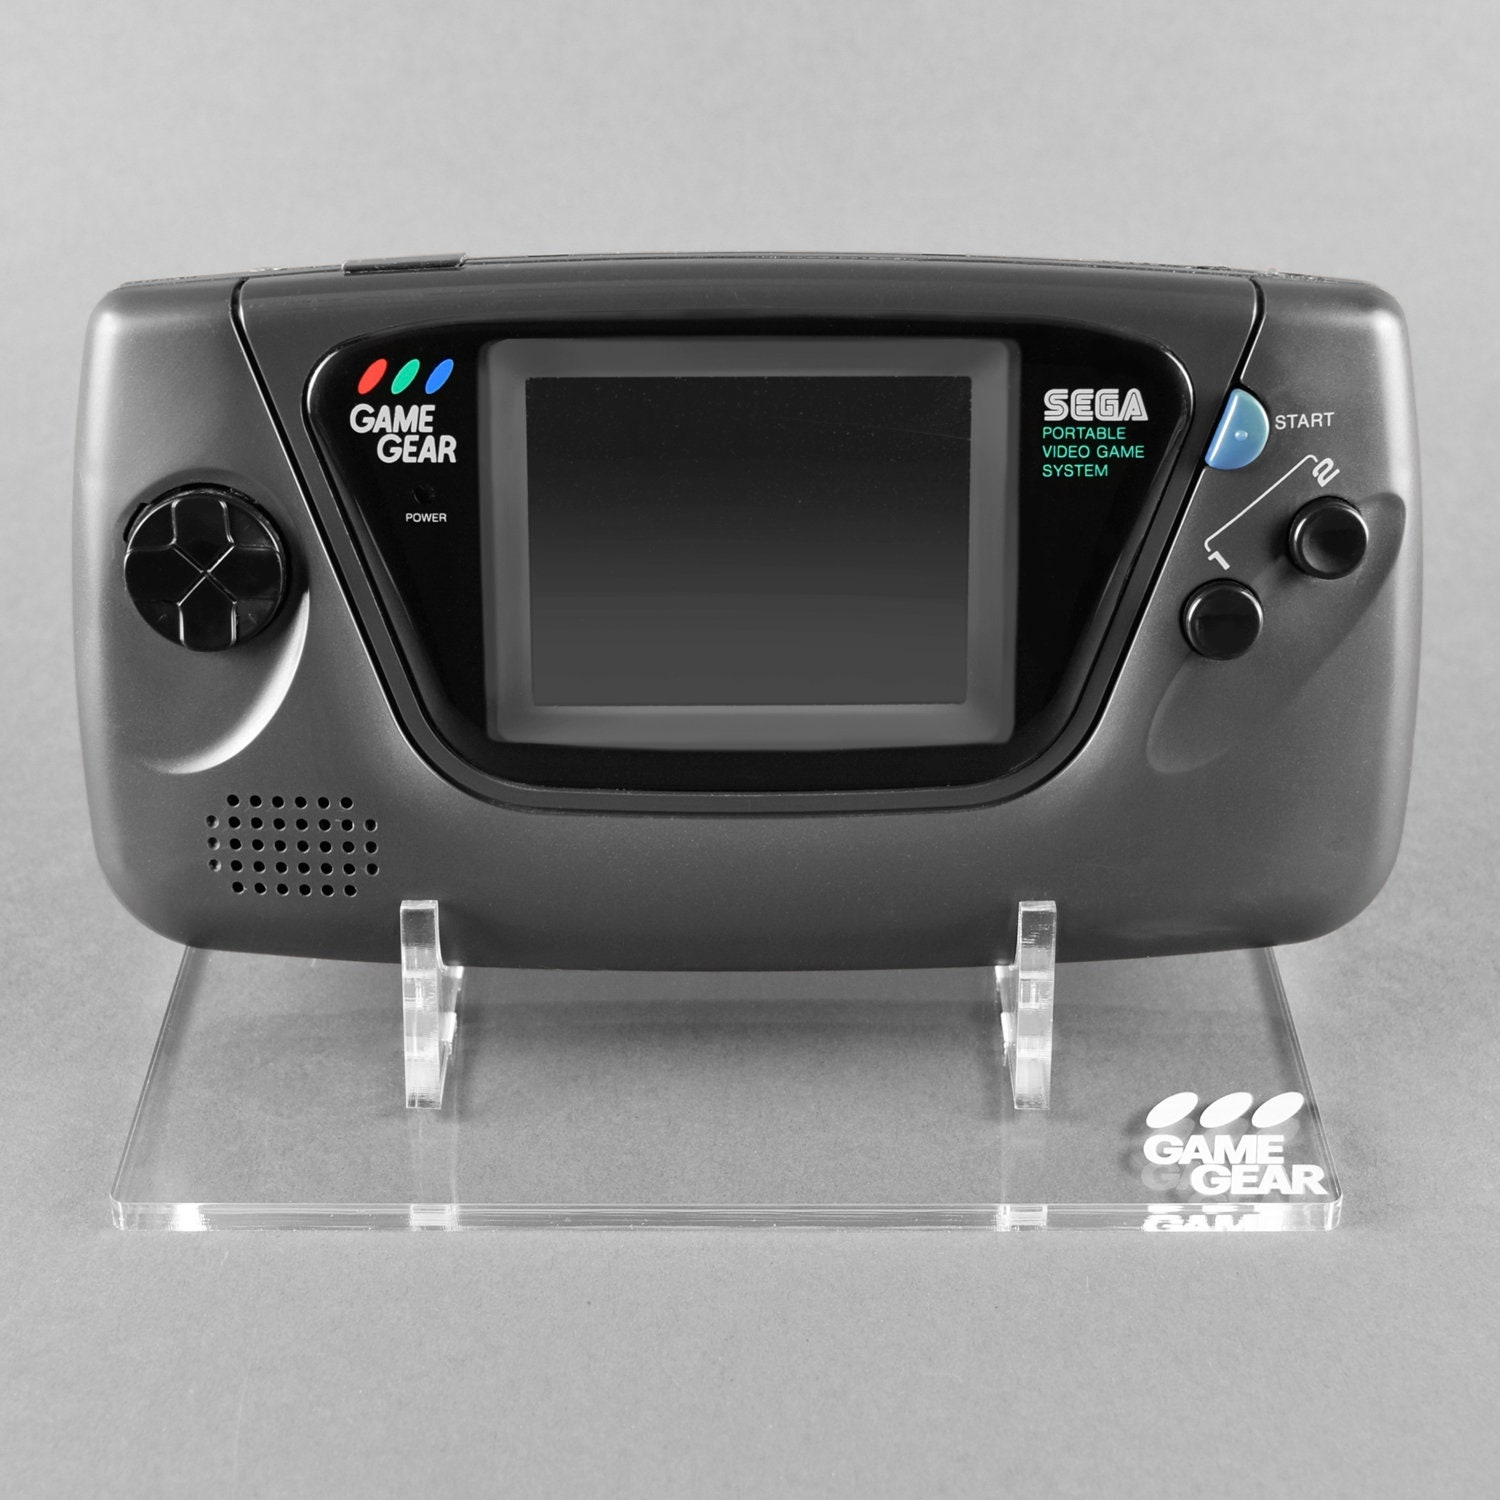 Game Gear Cartridge Display Tower Store and Display Your GameGear Collection!